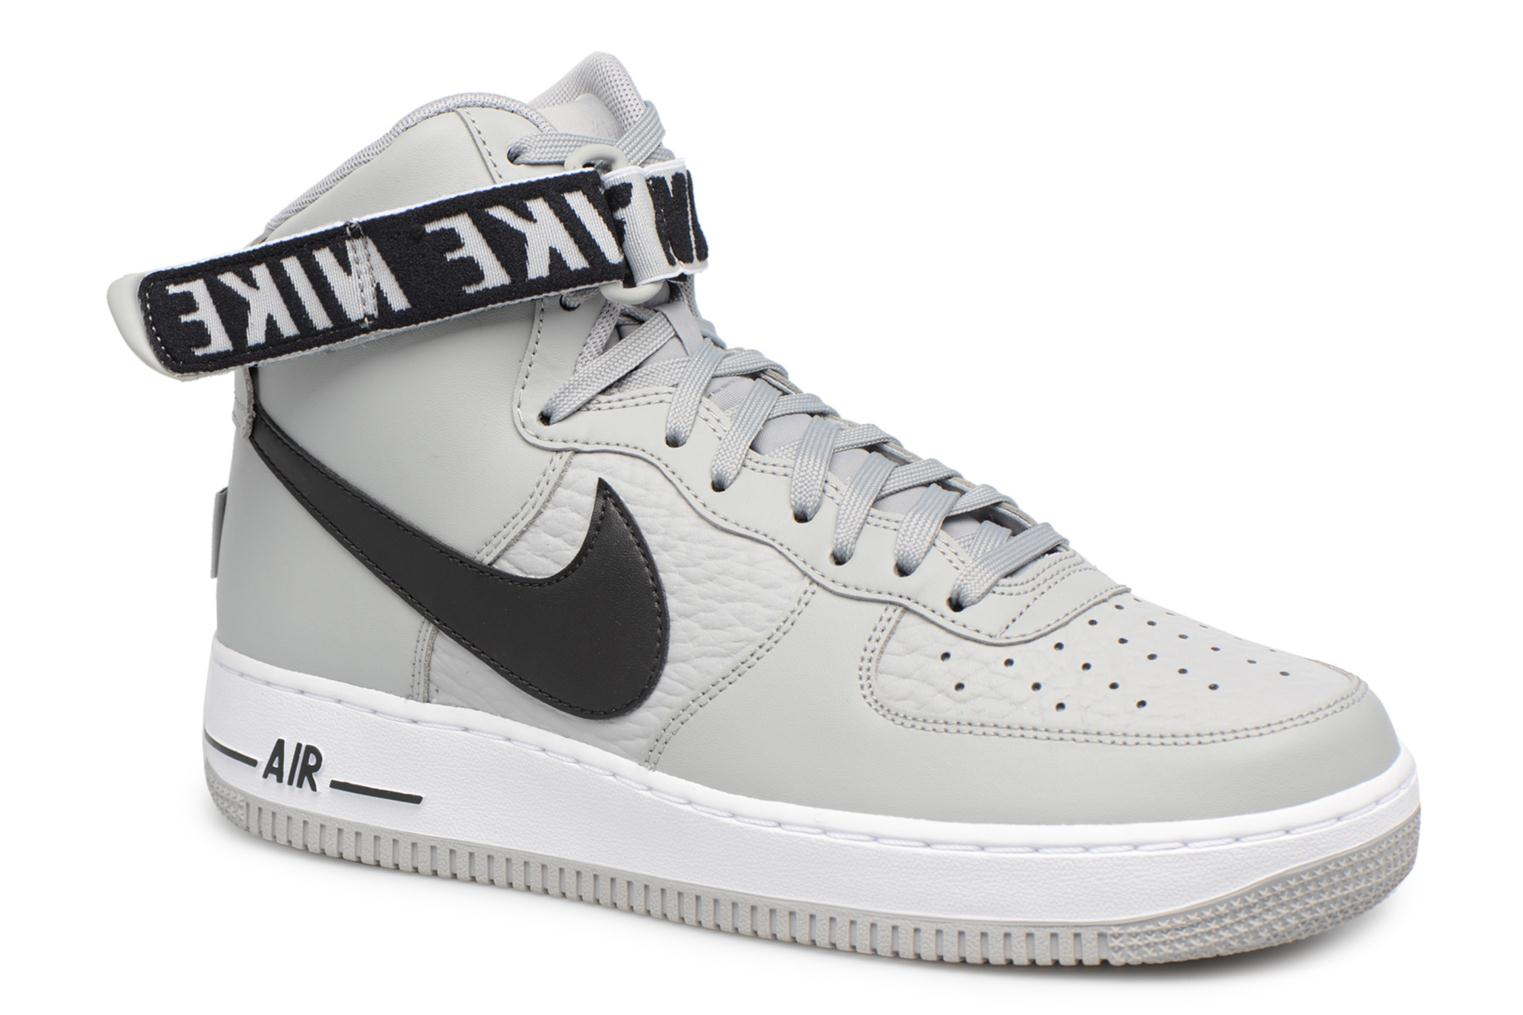 Nike Air Force 1 High'07 (Gris) - Baskets en Más cómodo Chaussures casual sauvages